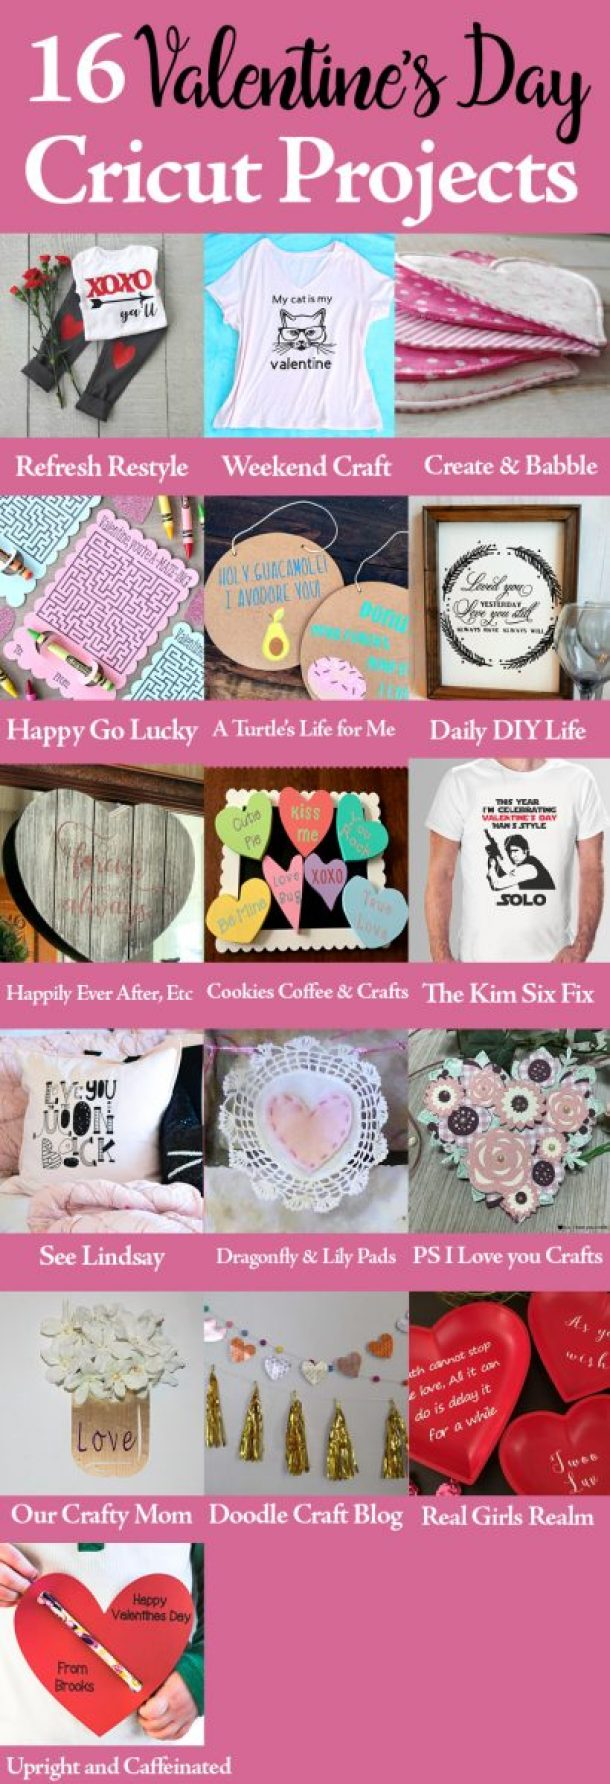 16 Valentine's Day Cricut Projects. #cricut #cricutprojects #valentine #valentinesday